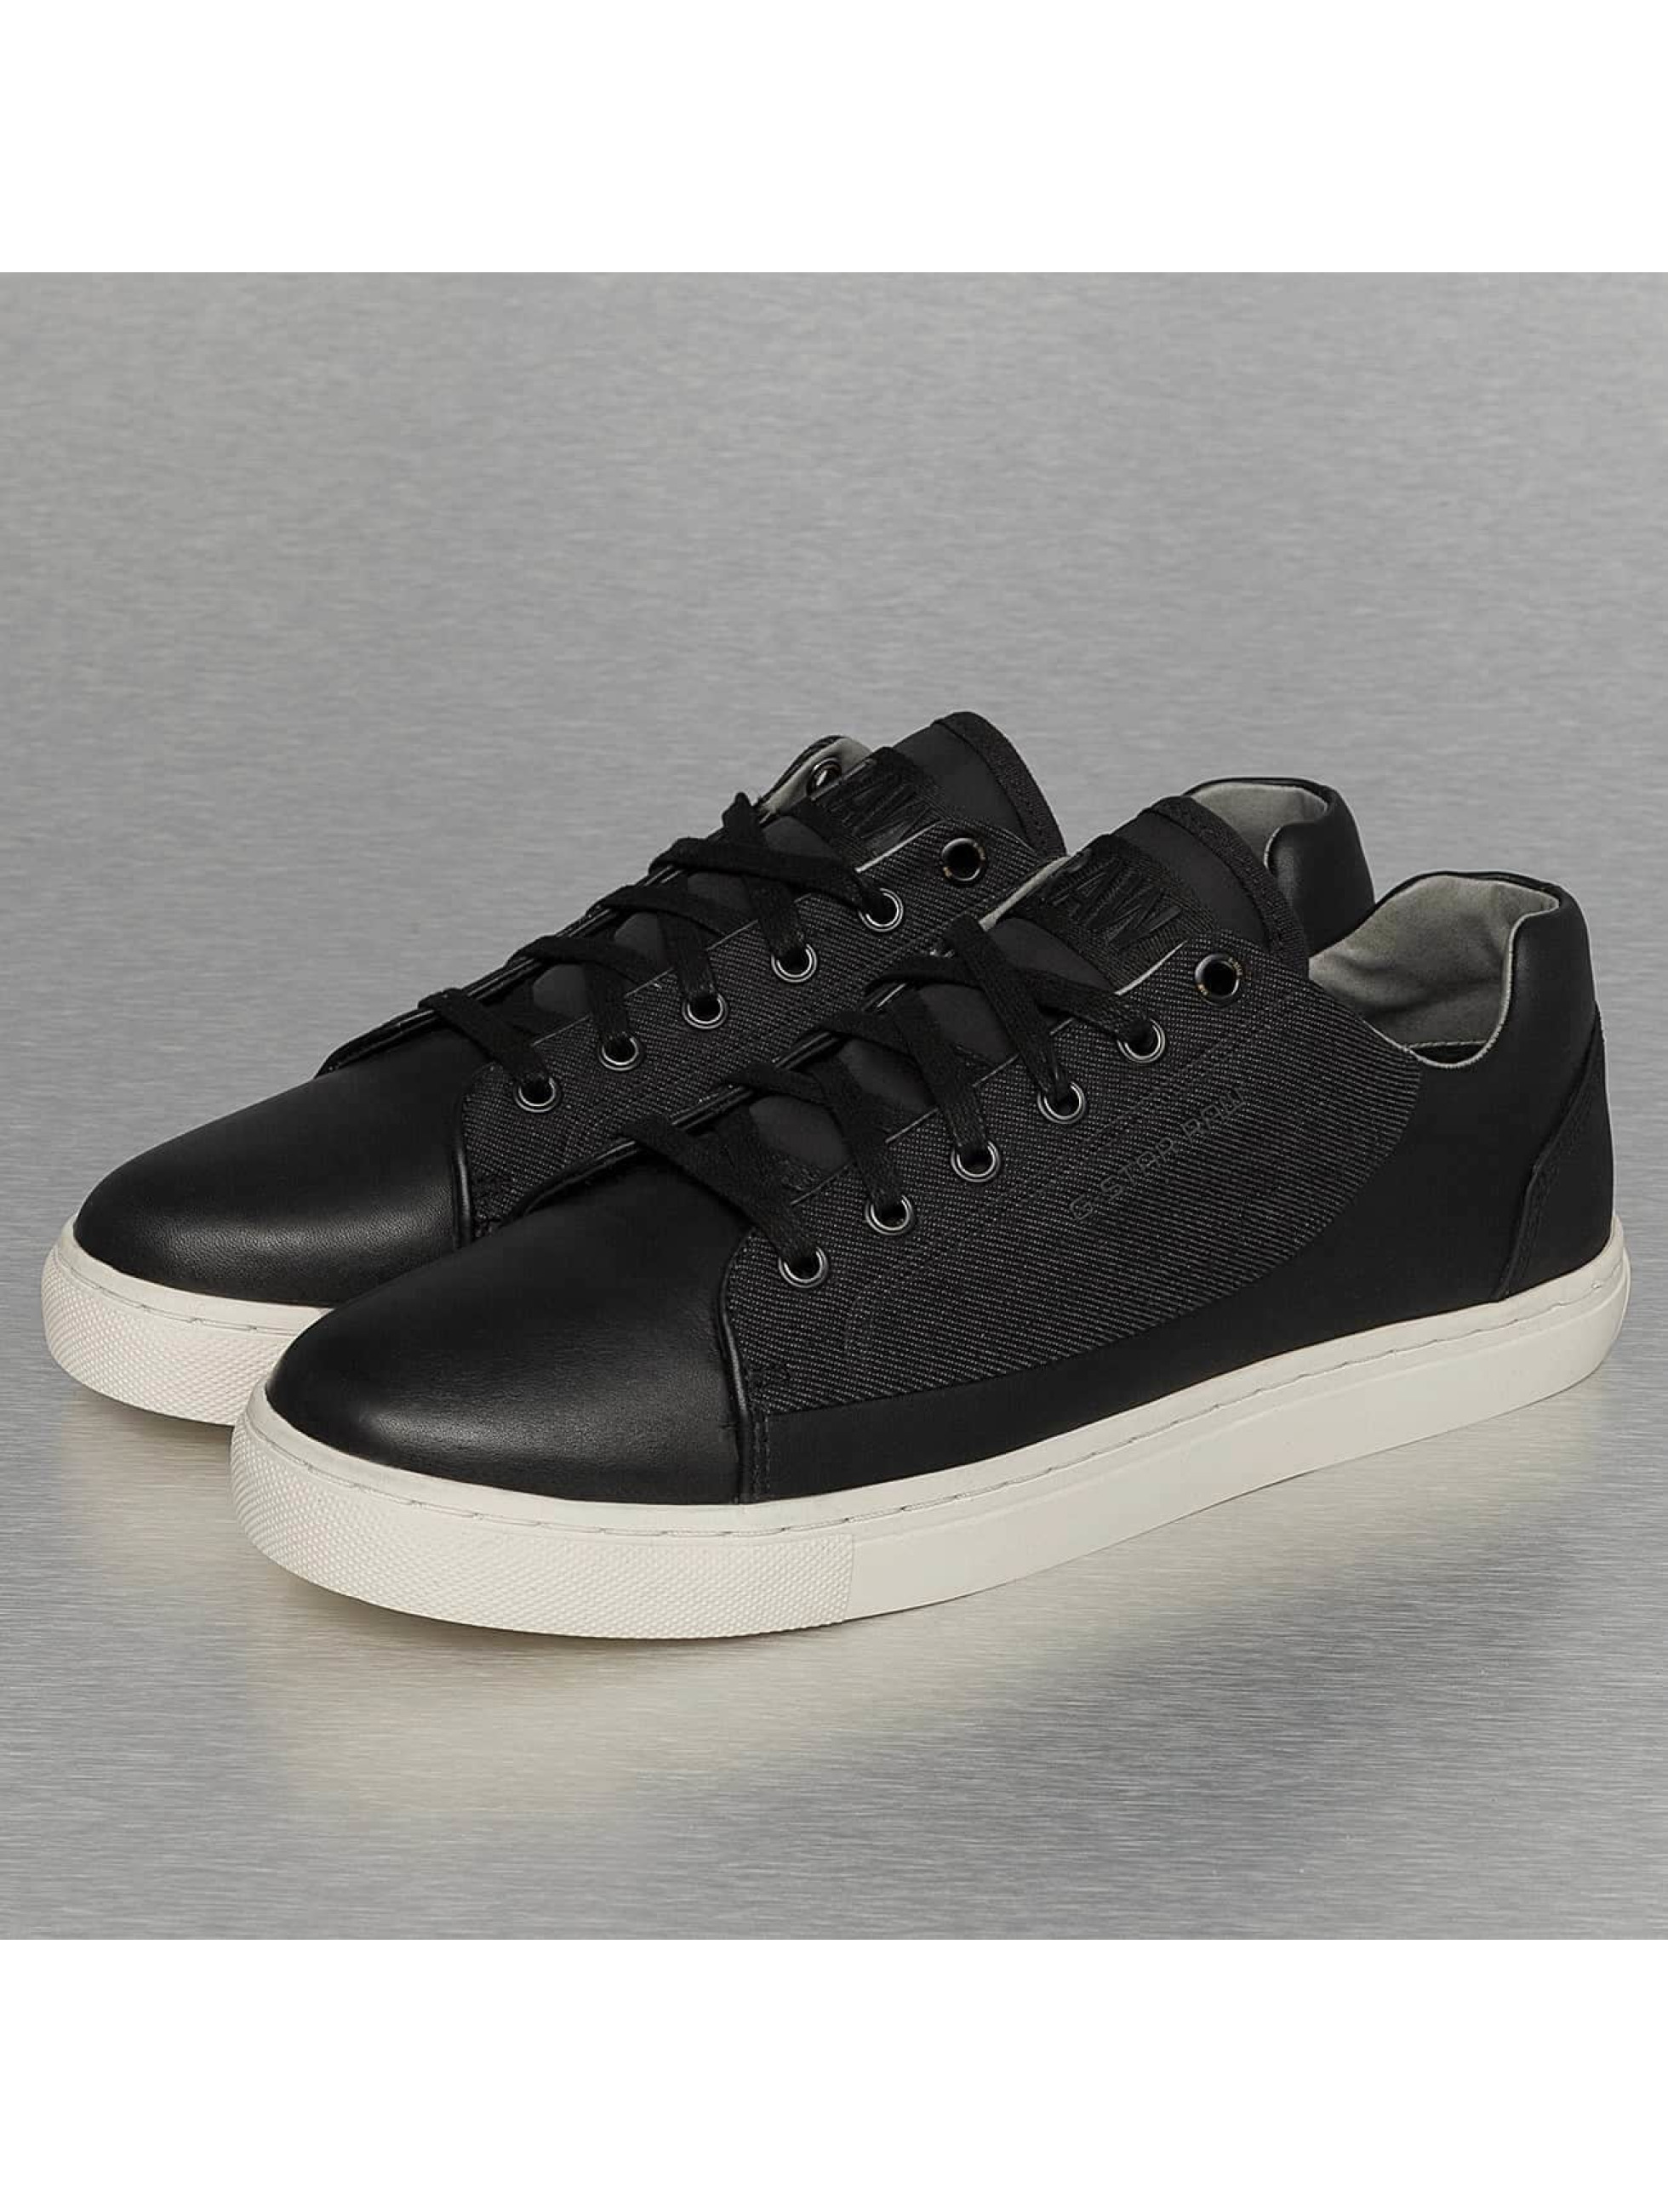 G-Star Sneaker Thec Leather schwarz